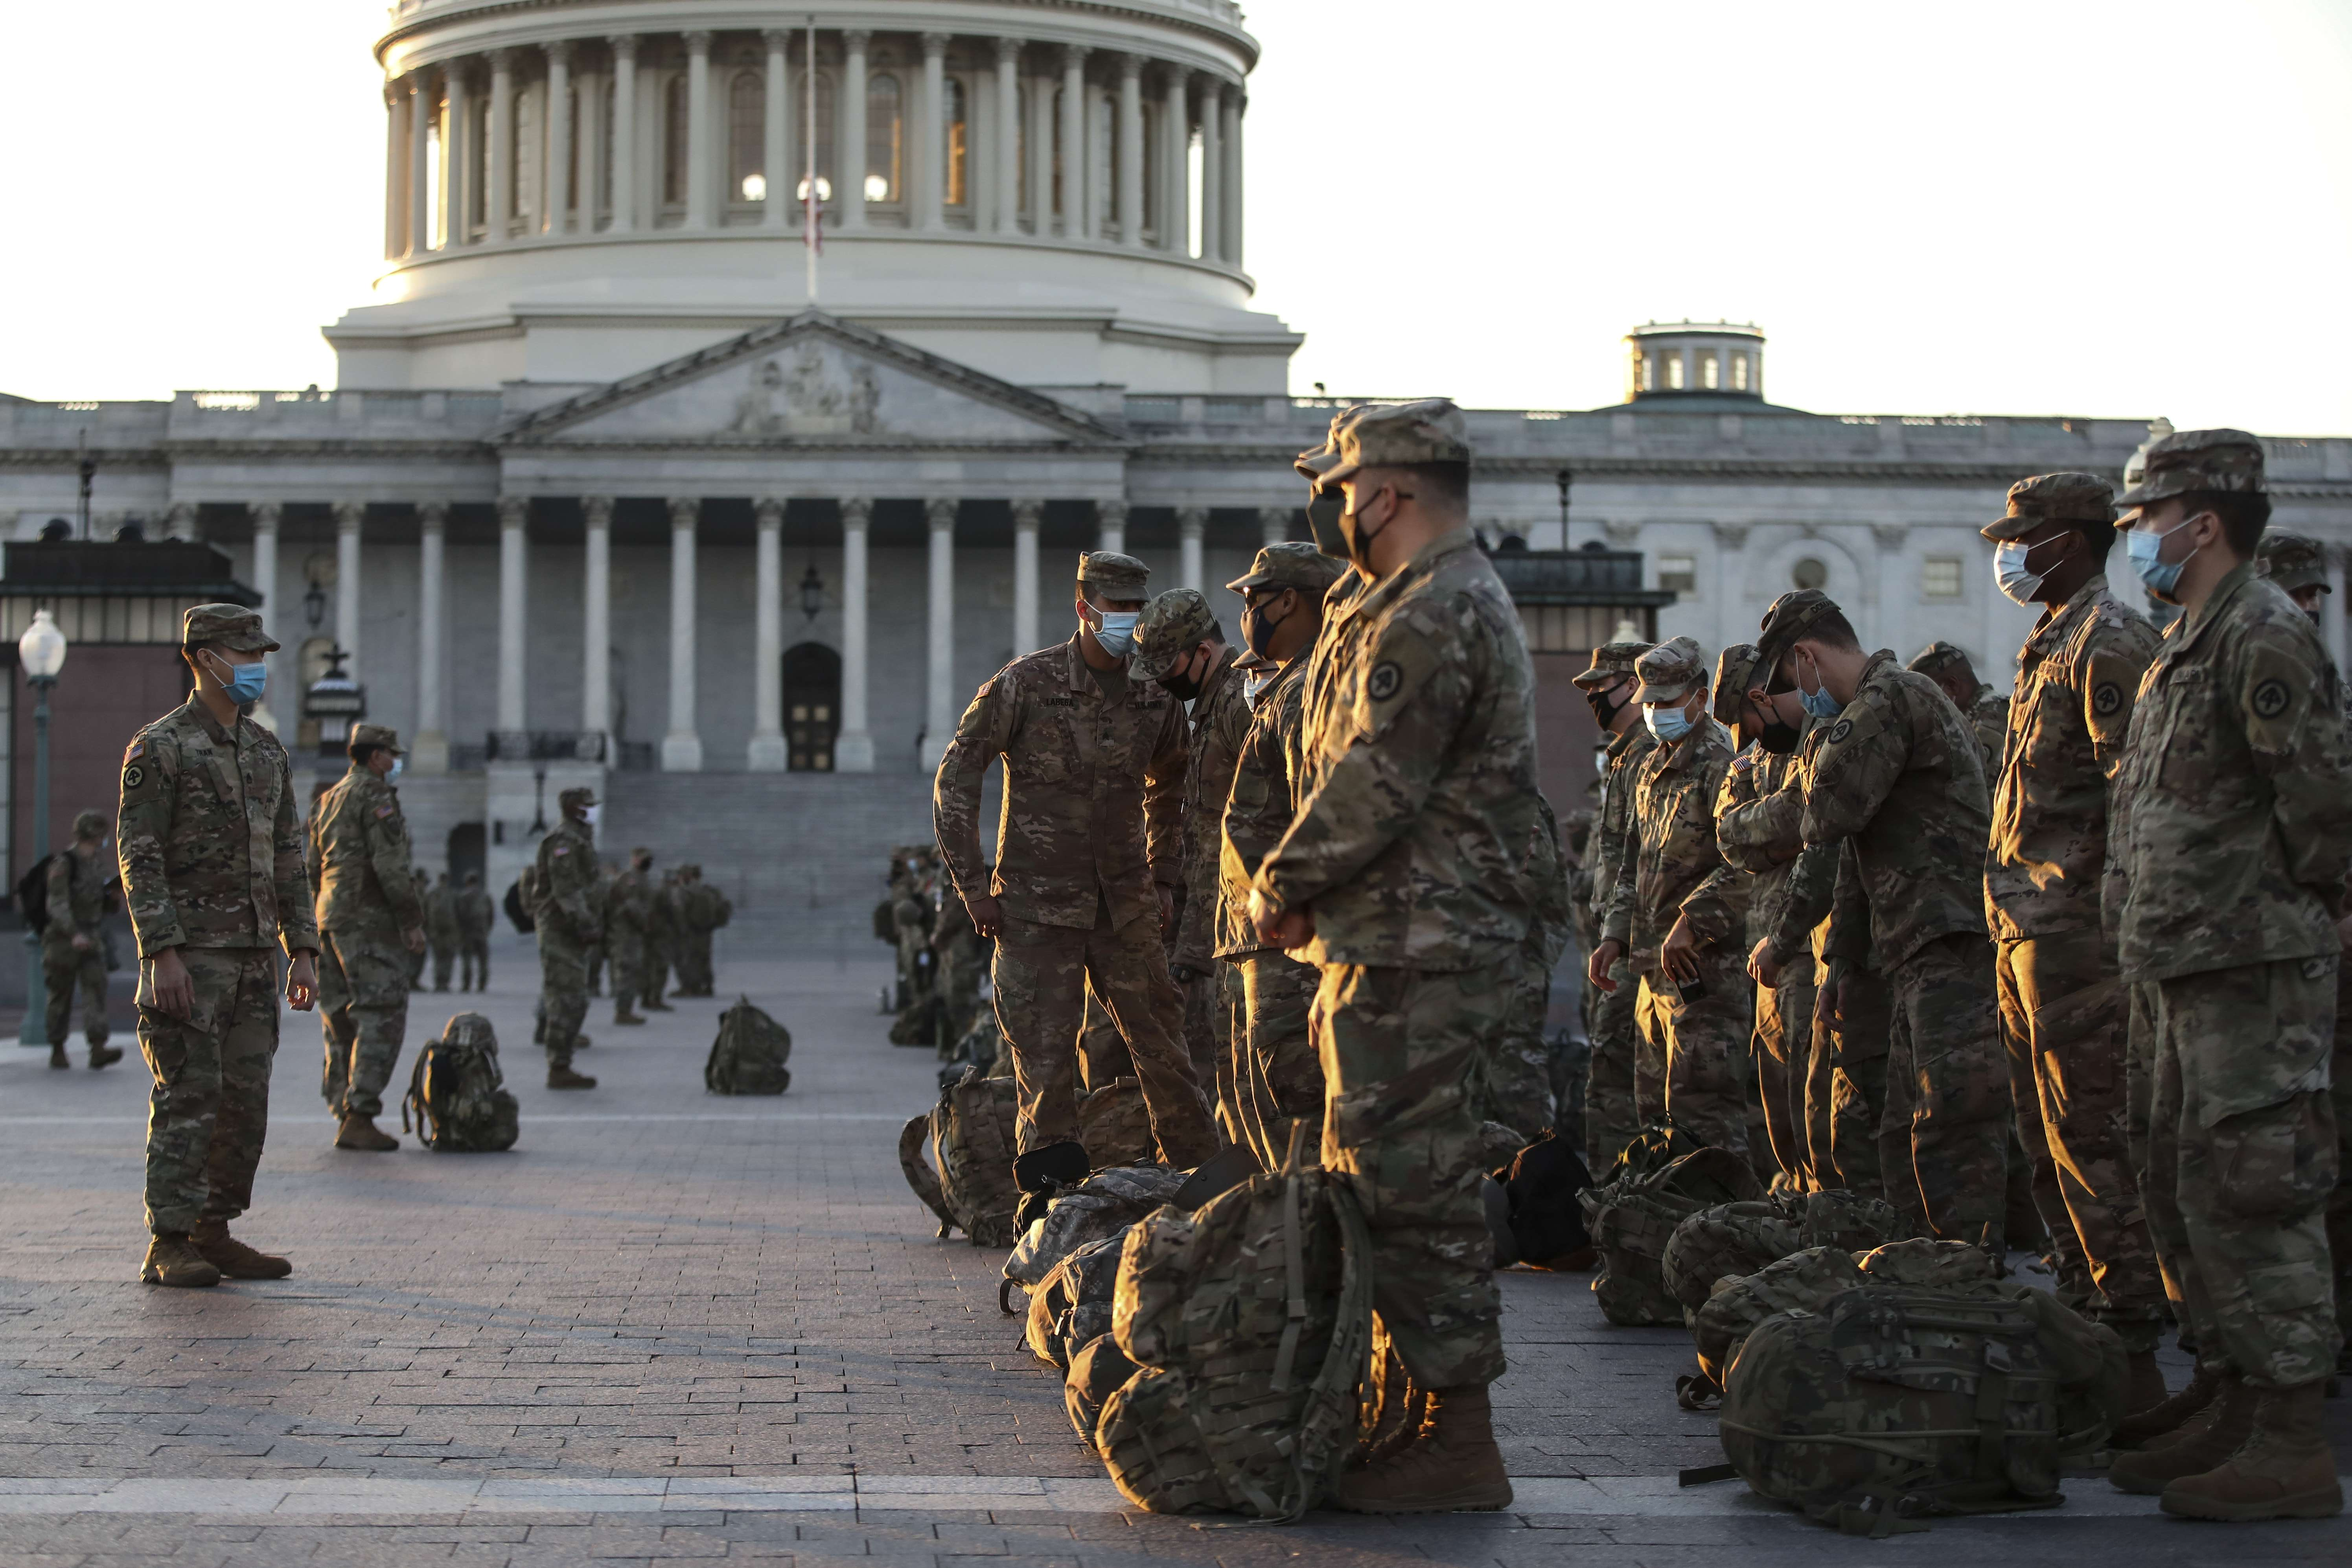 Washington prepares for possible alterations during the presidential inauguration on January 20.